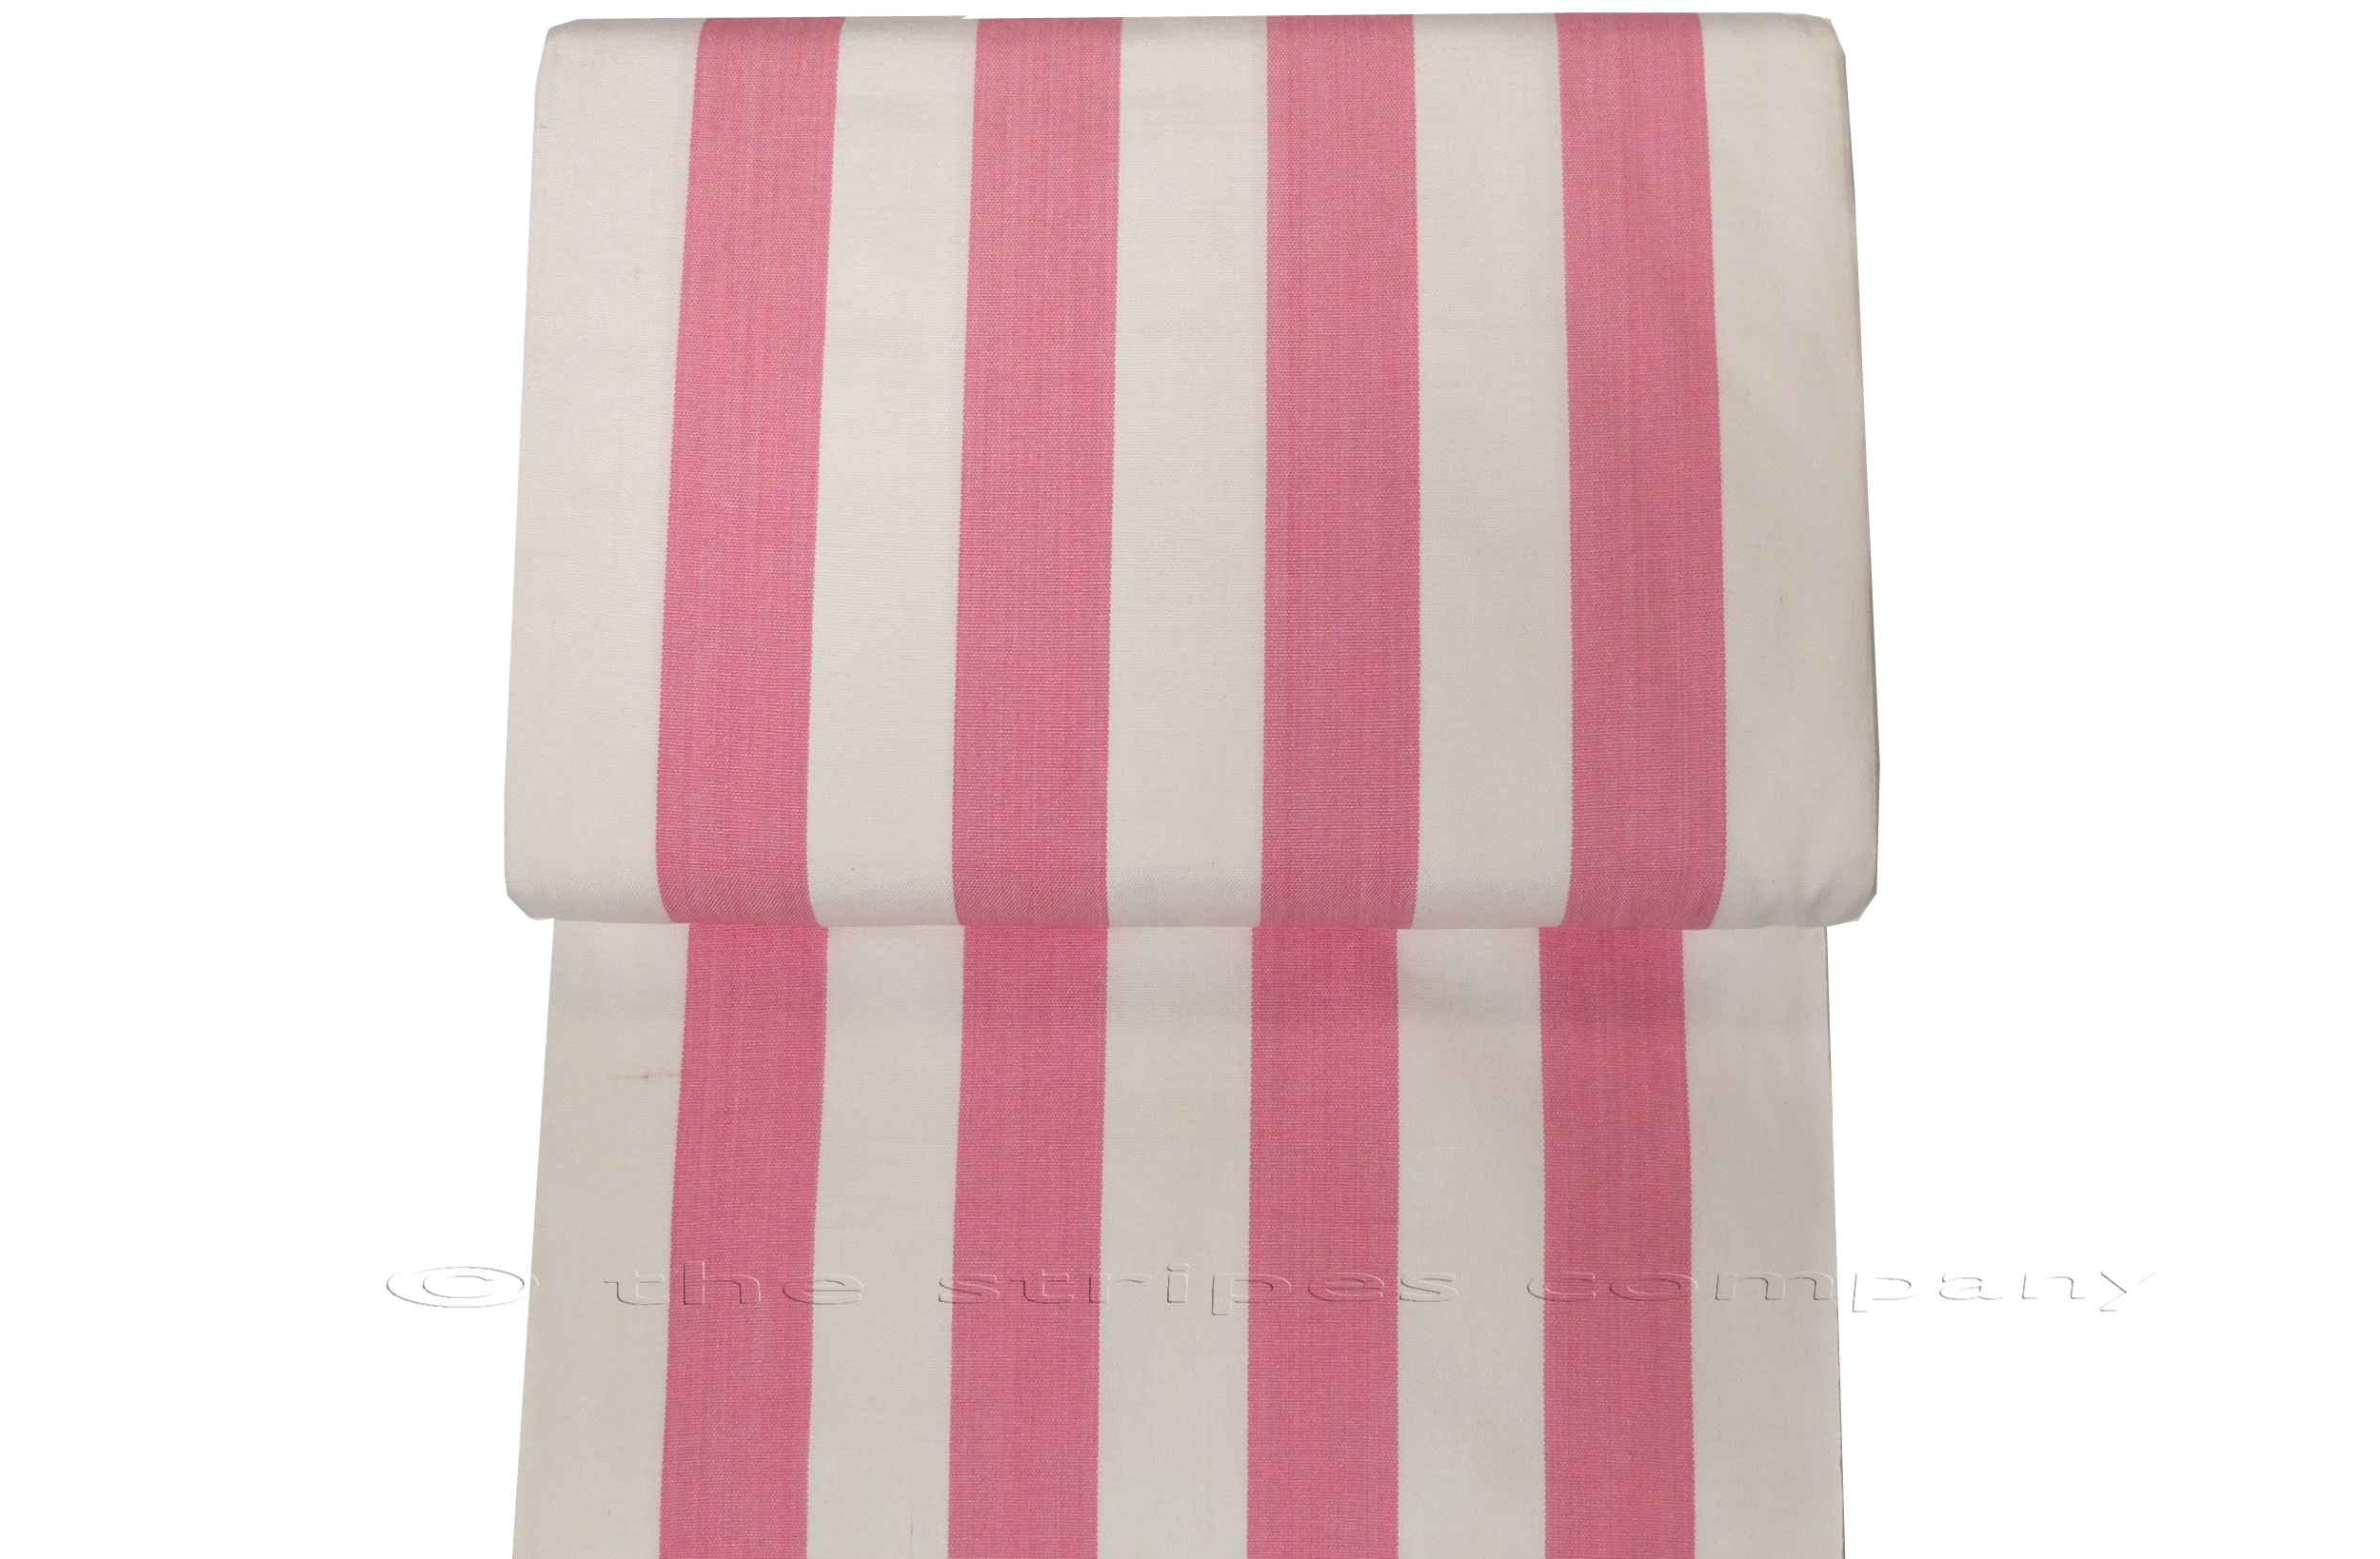 pink - Classic Striped Deckchair Canvas Fabric - Thick Weave